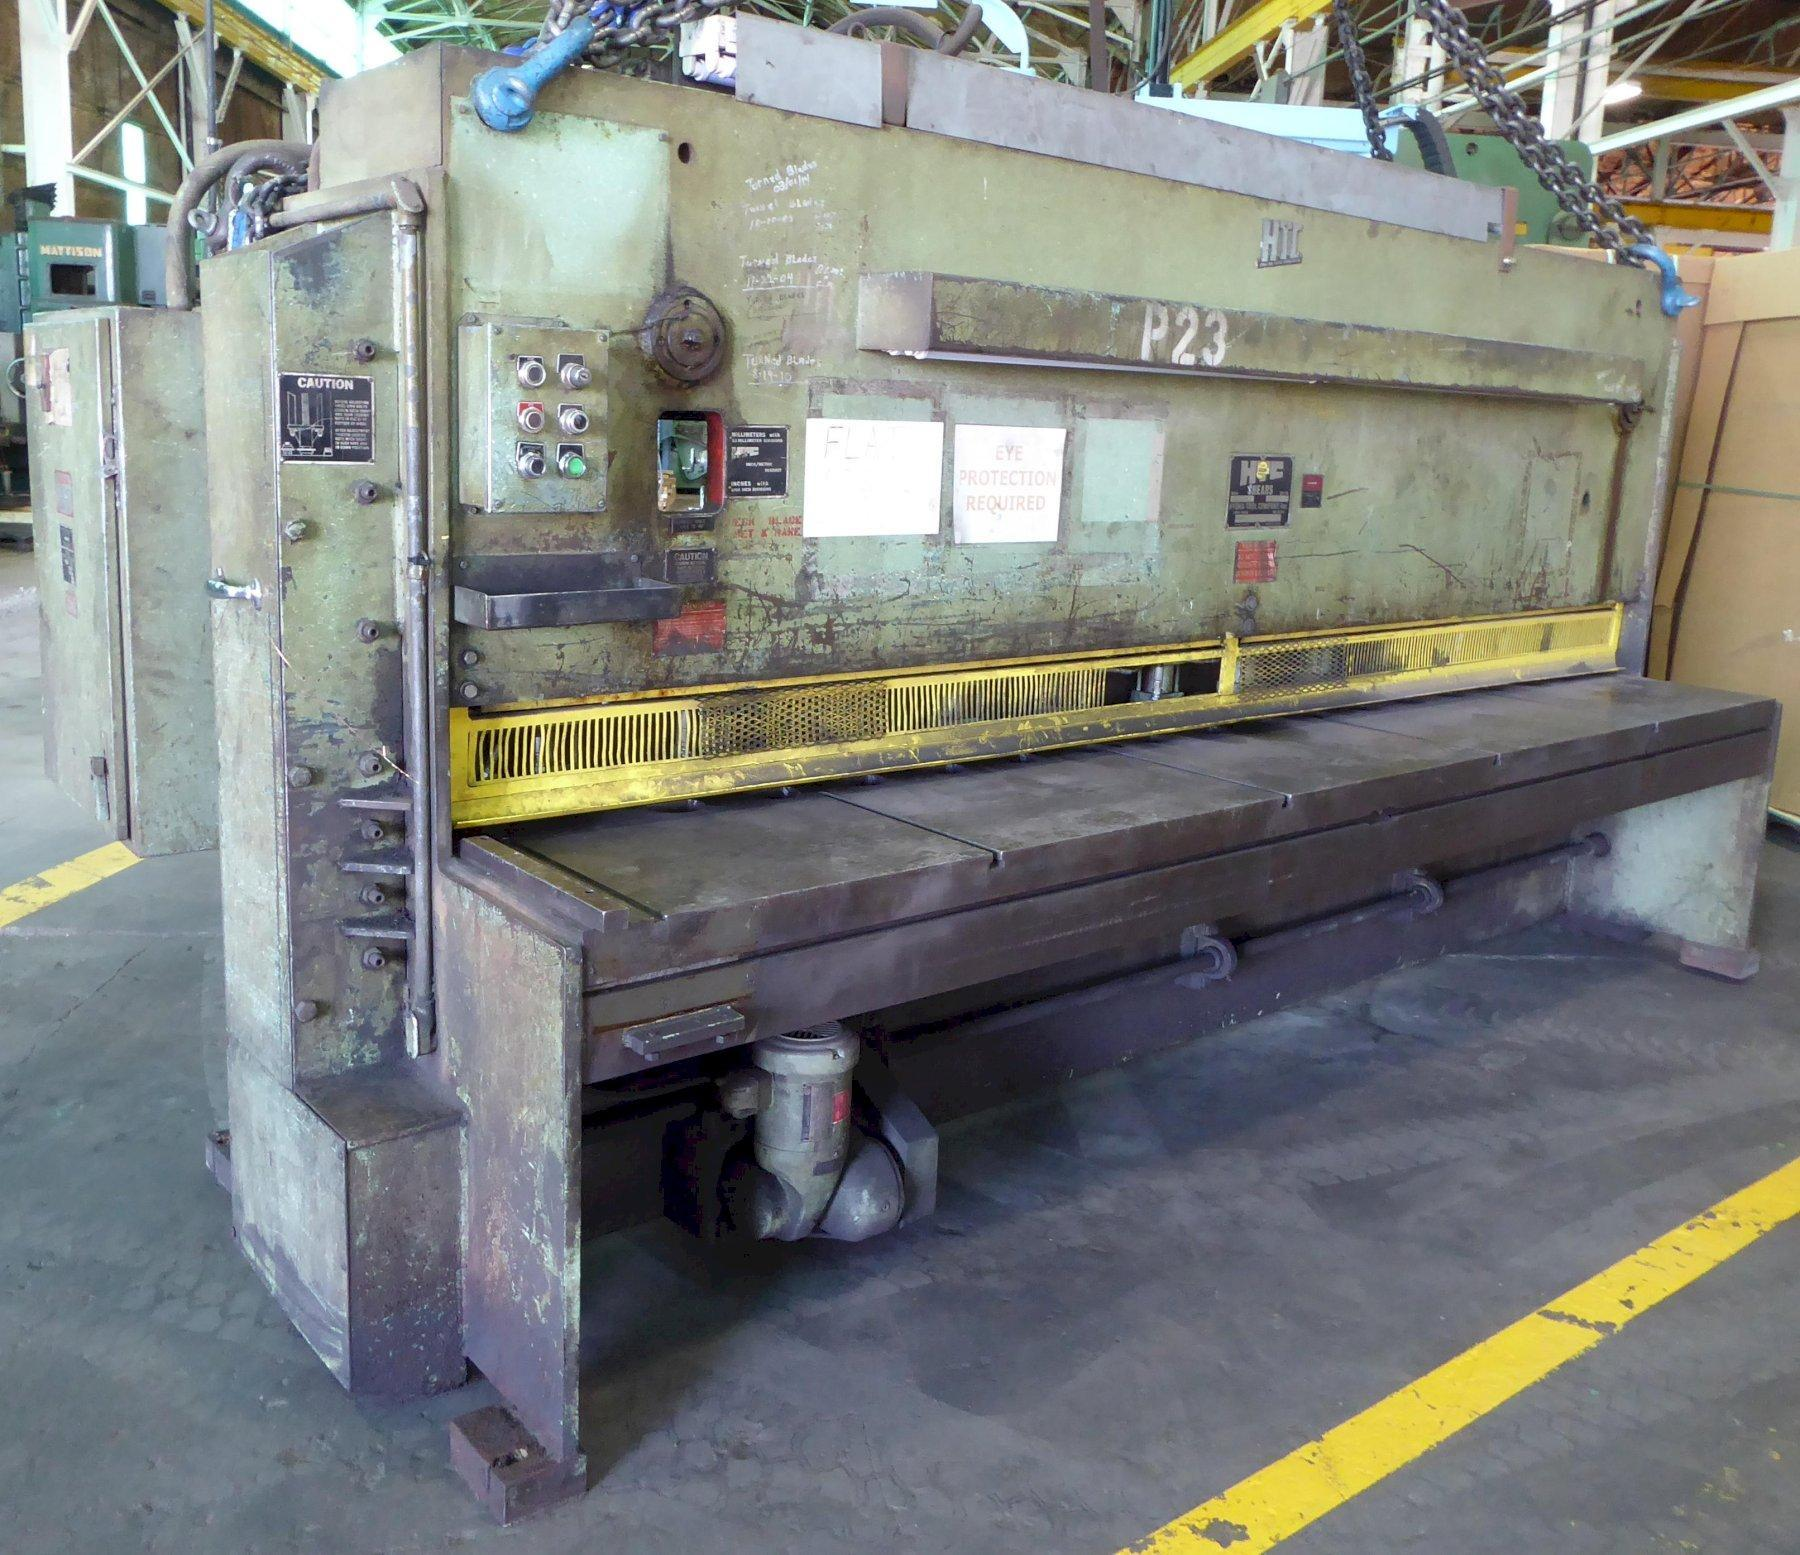 """12' x 3/8"""" HTC Hydraulic Shear, Model 375-12A, FOPBG, 10' Sq. Arm, Front Supports, Low Price"""